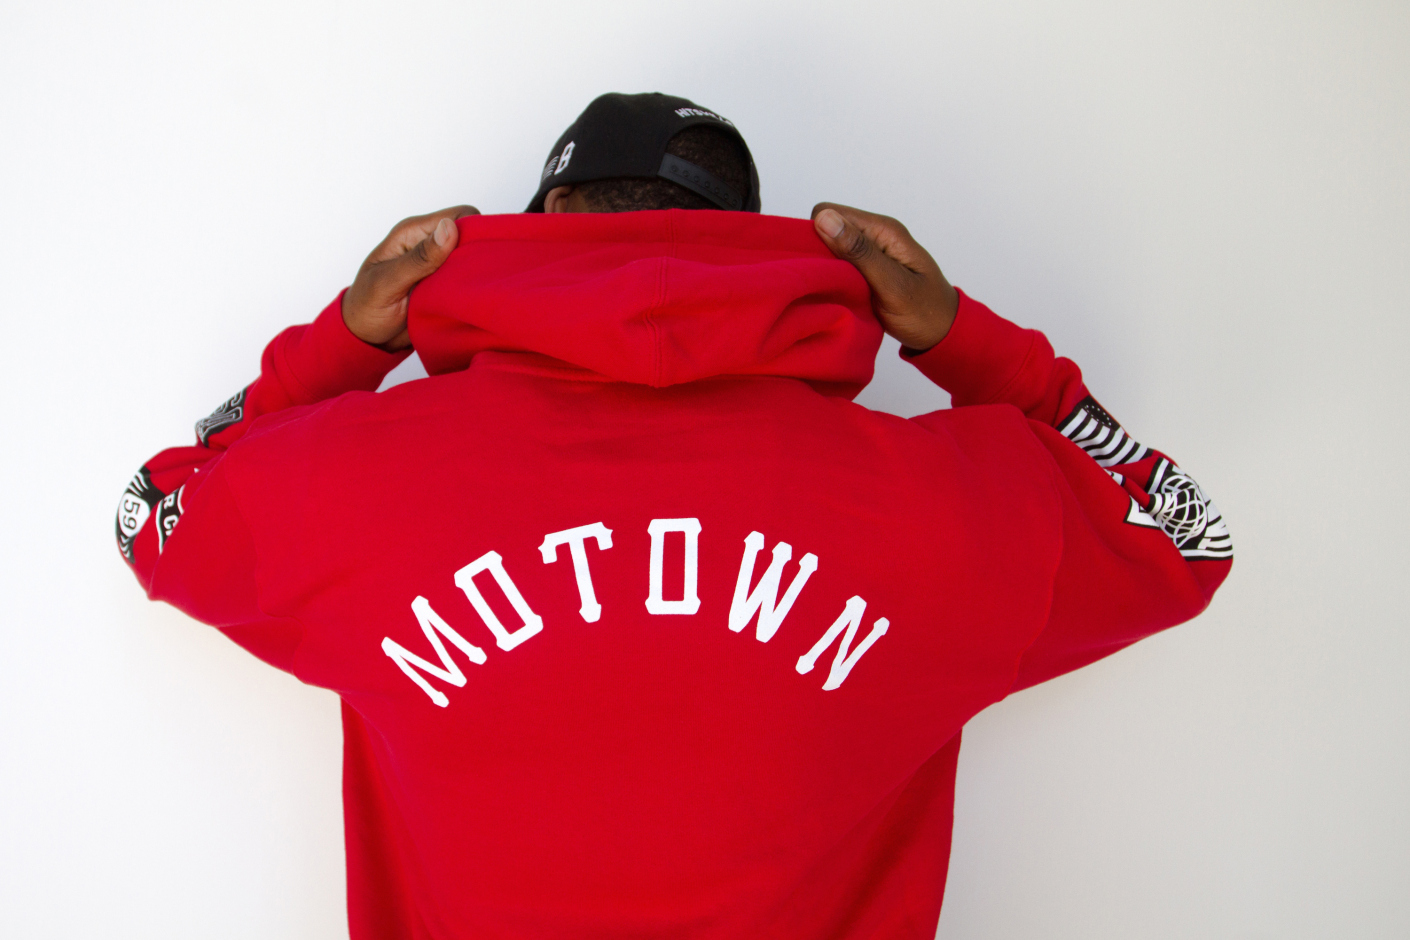 motown-records-x-black-scale-lookbook-6